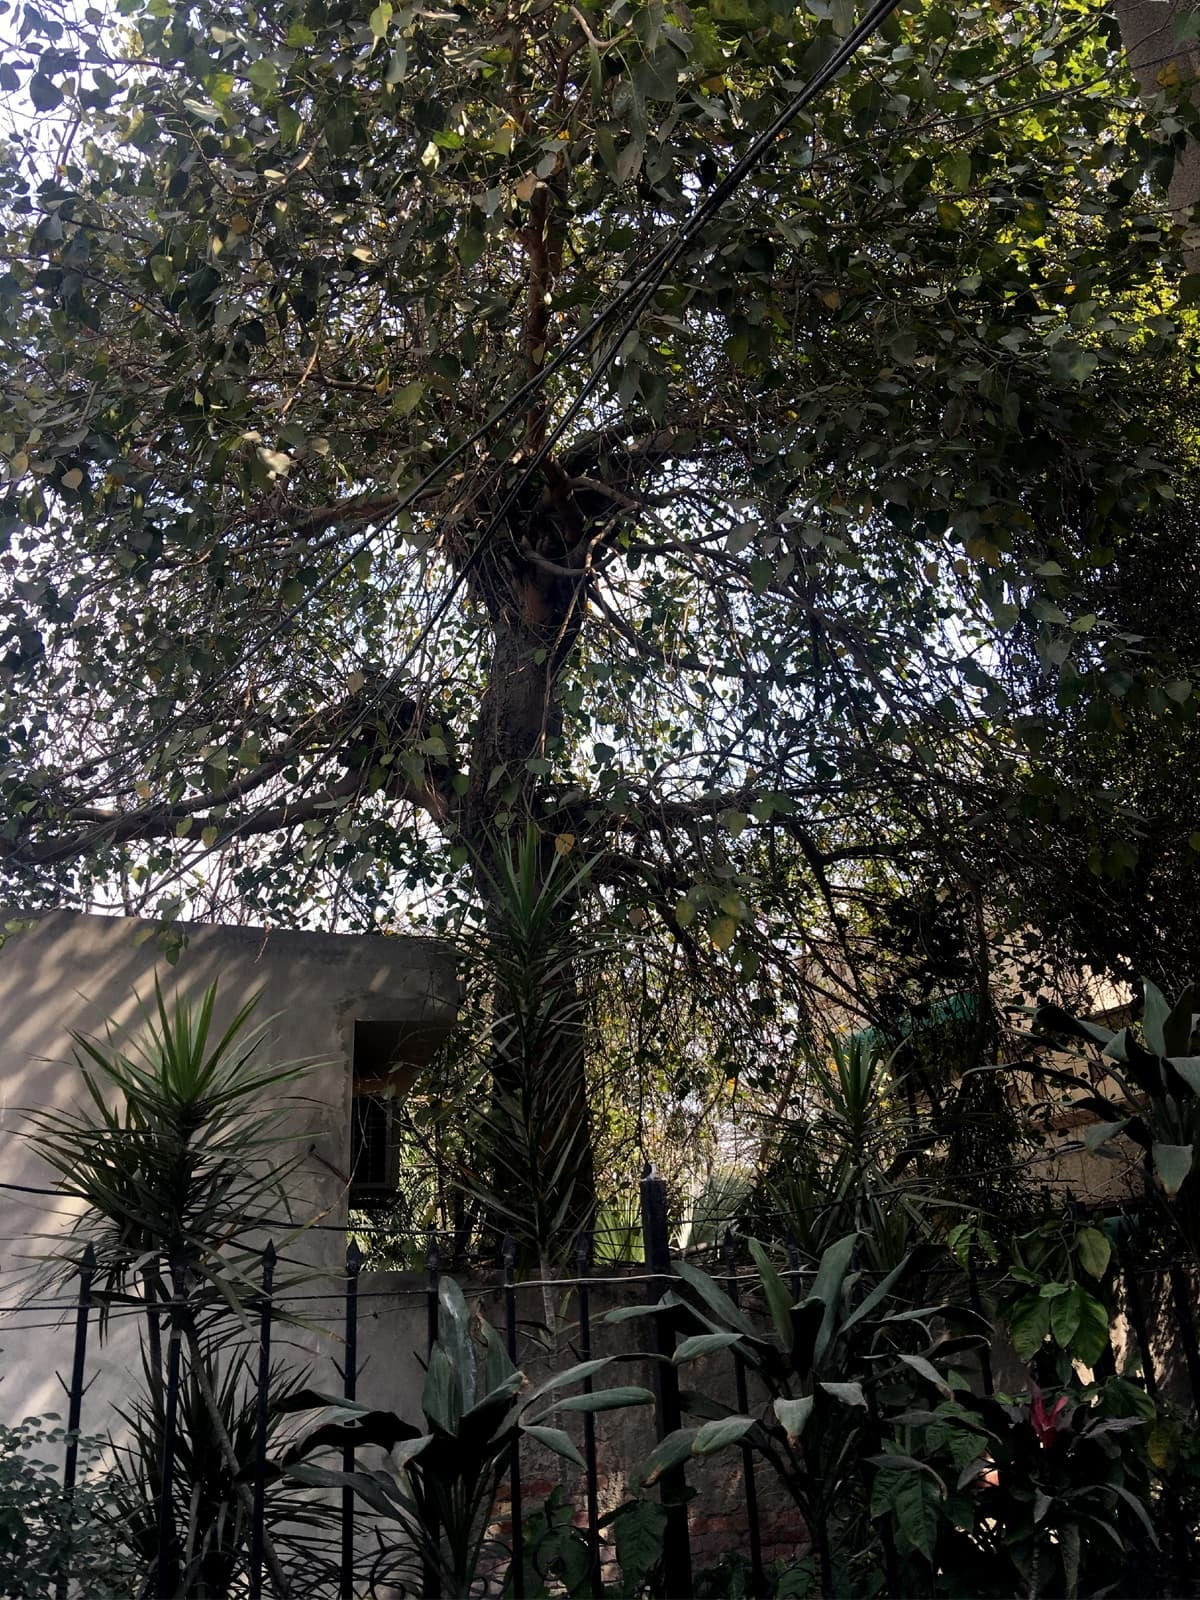 A peepal tree where, according to some witnesses, the gallows were built in 1978 to carry out a public hanging in Lahore | Subuk Hasnain